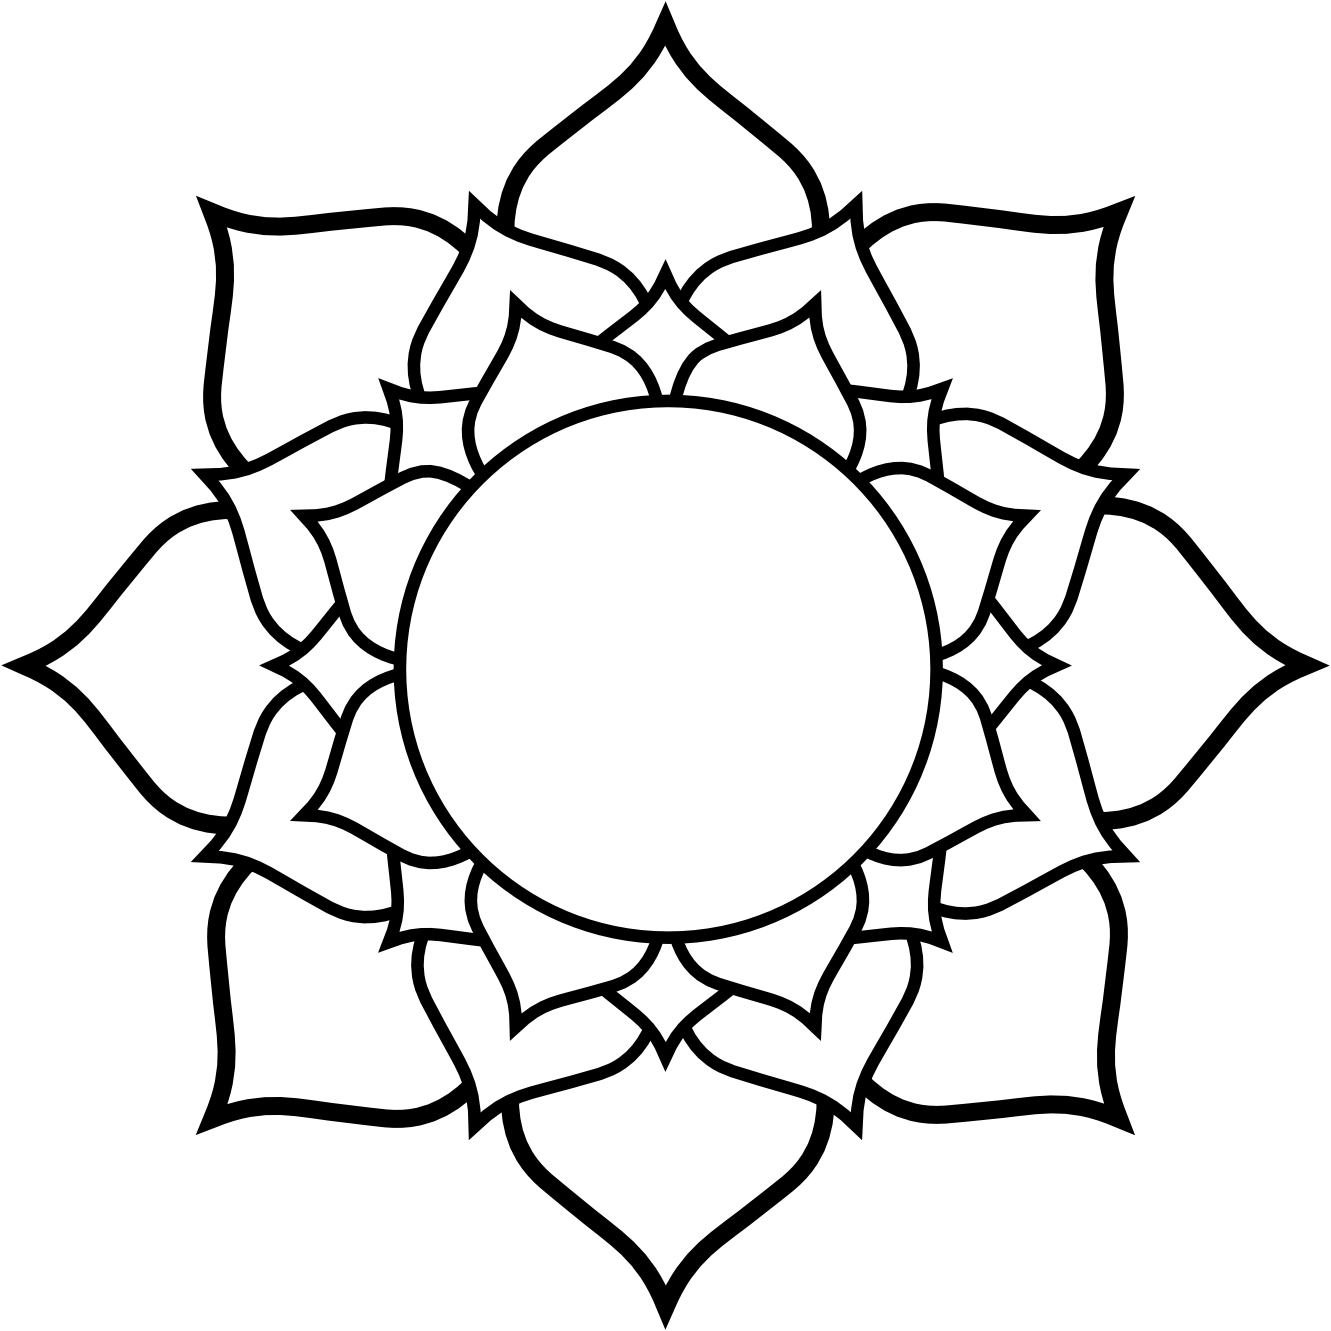 Lotus flower clipart black and white picture transparent clipartist.info Lotus black white line art tattoo tatoo flower SVG ... picture transparent